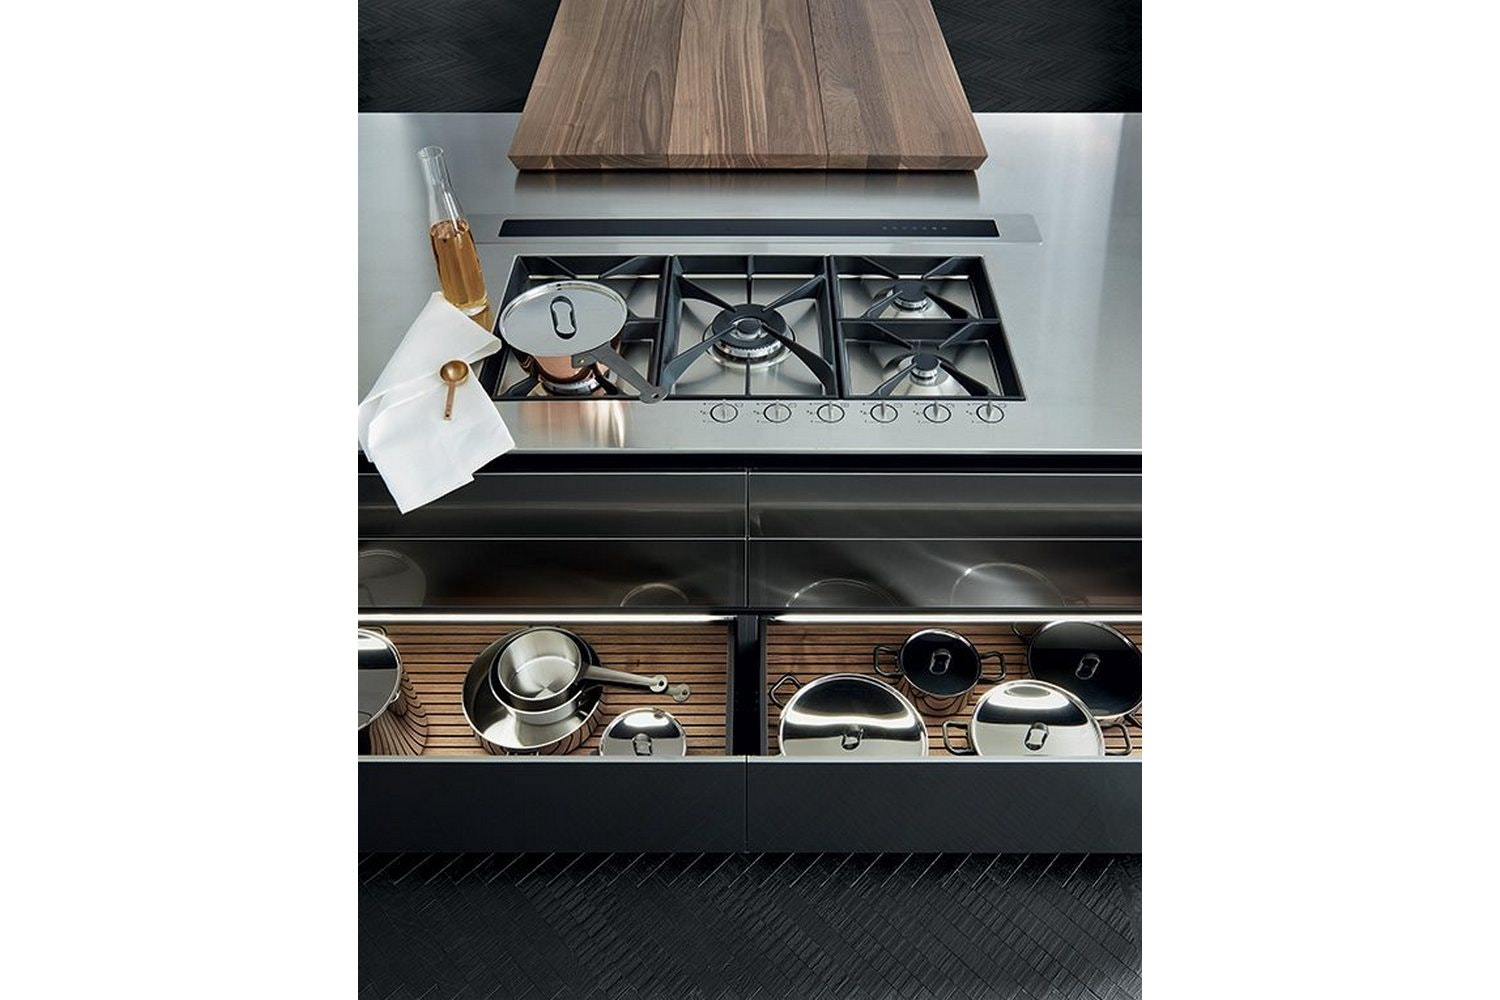 Twelve Kitchen by Carlo Colombo & R&D Varenna for Poliform